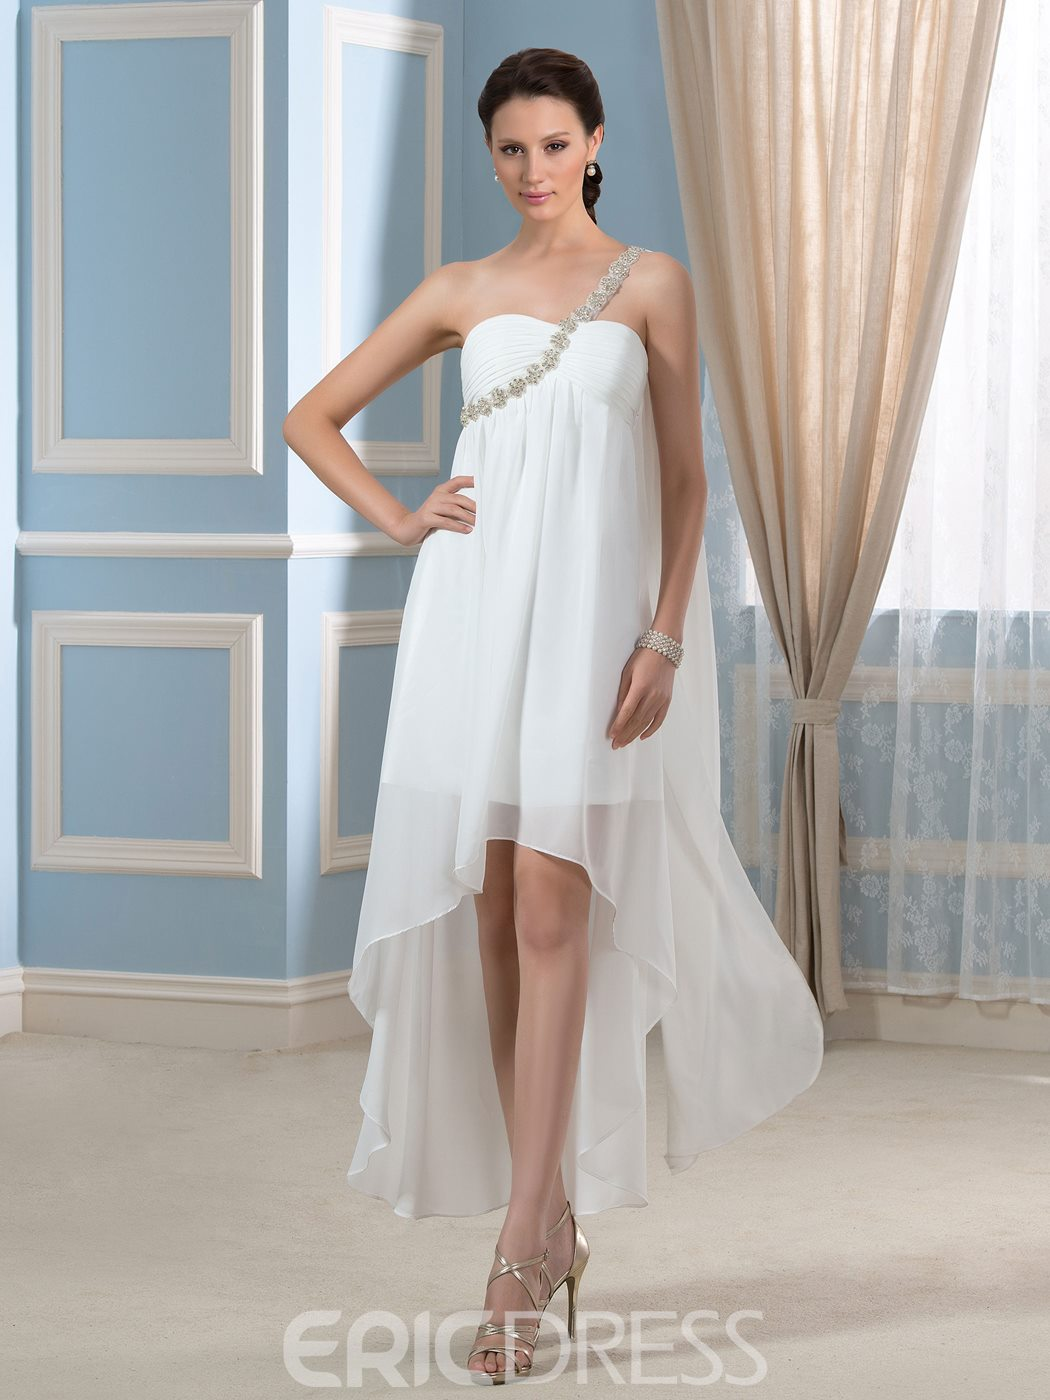 Ericdress One Shoulder High Low Wedding Dress 11508098 - Ericdress.com